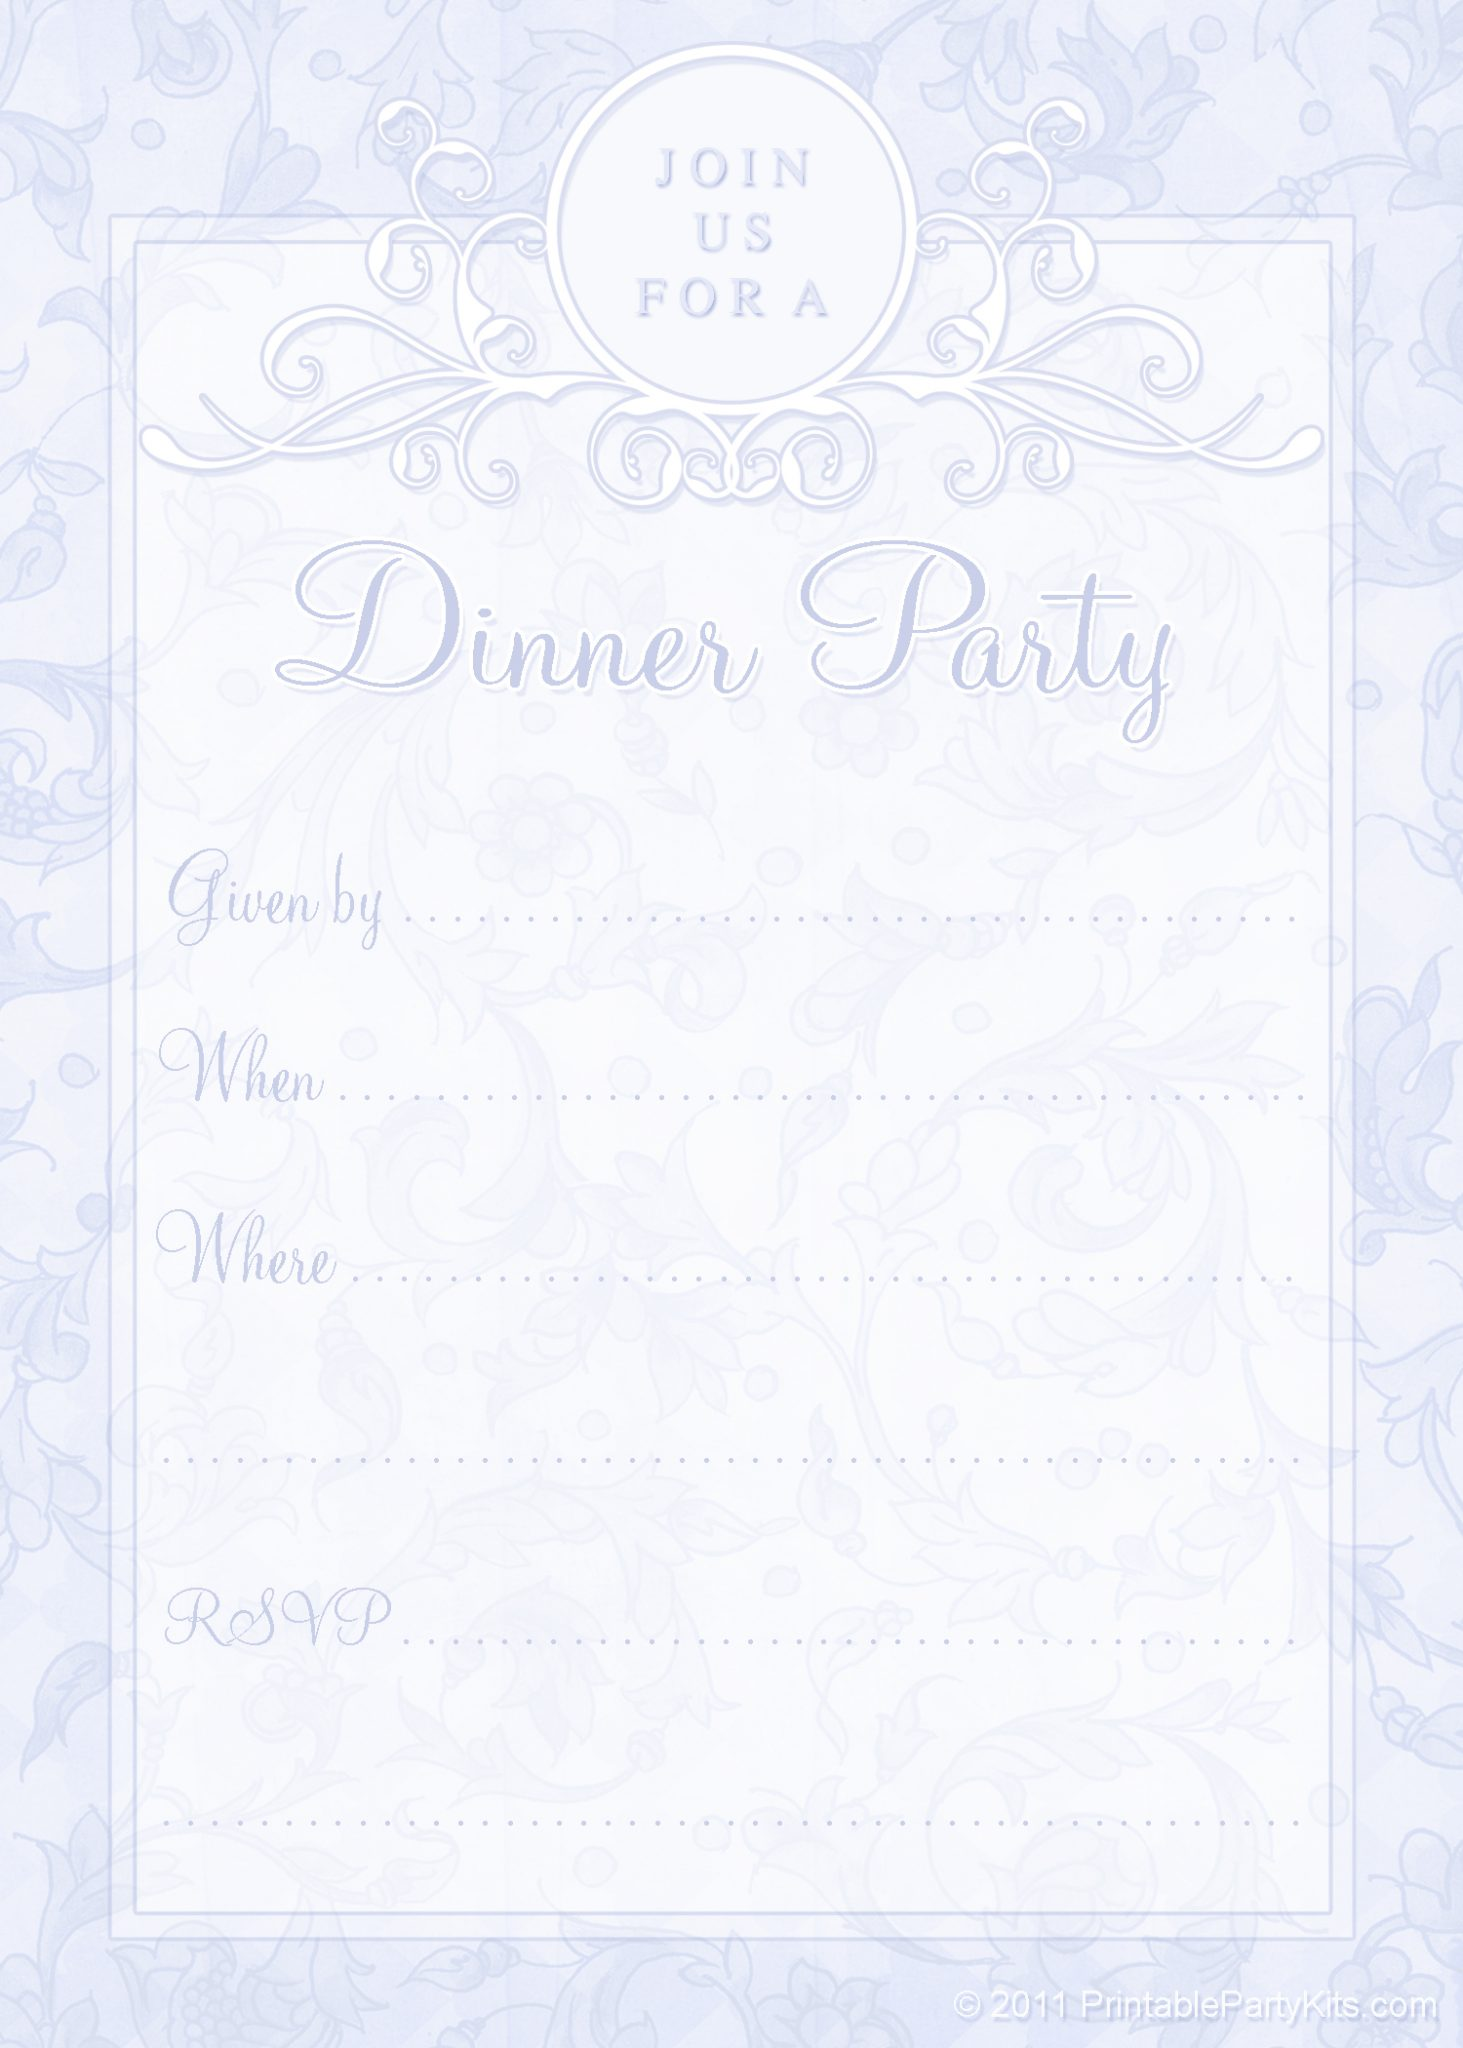 Free Printable Dinner Party Invites | Printable Party Kits